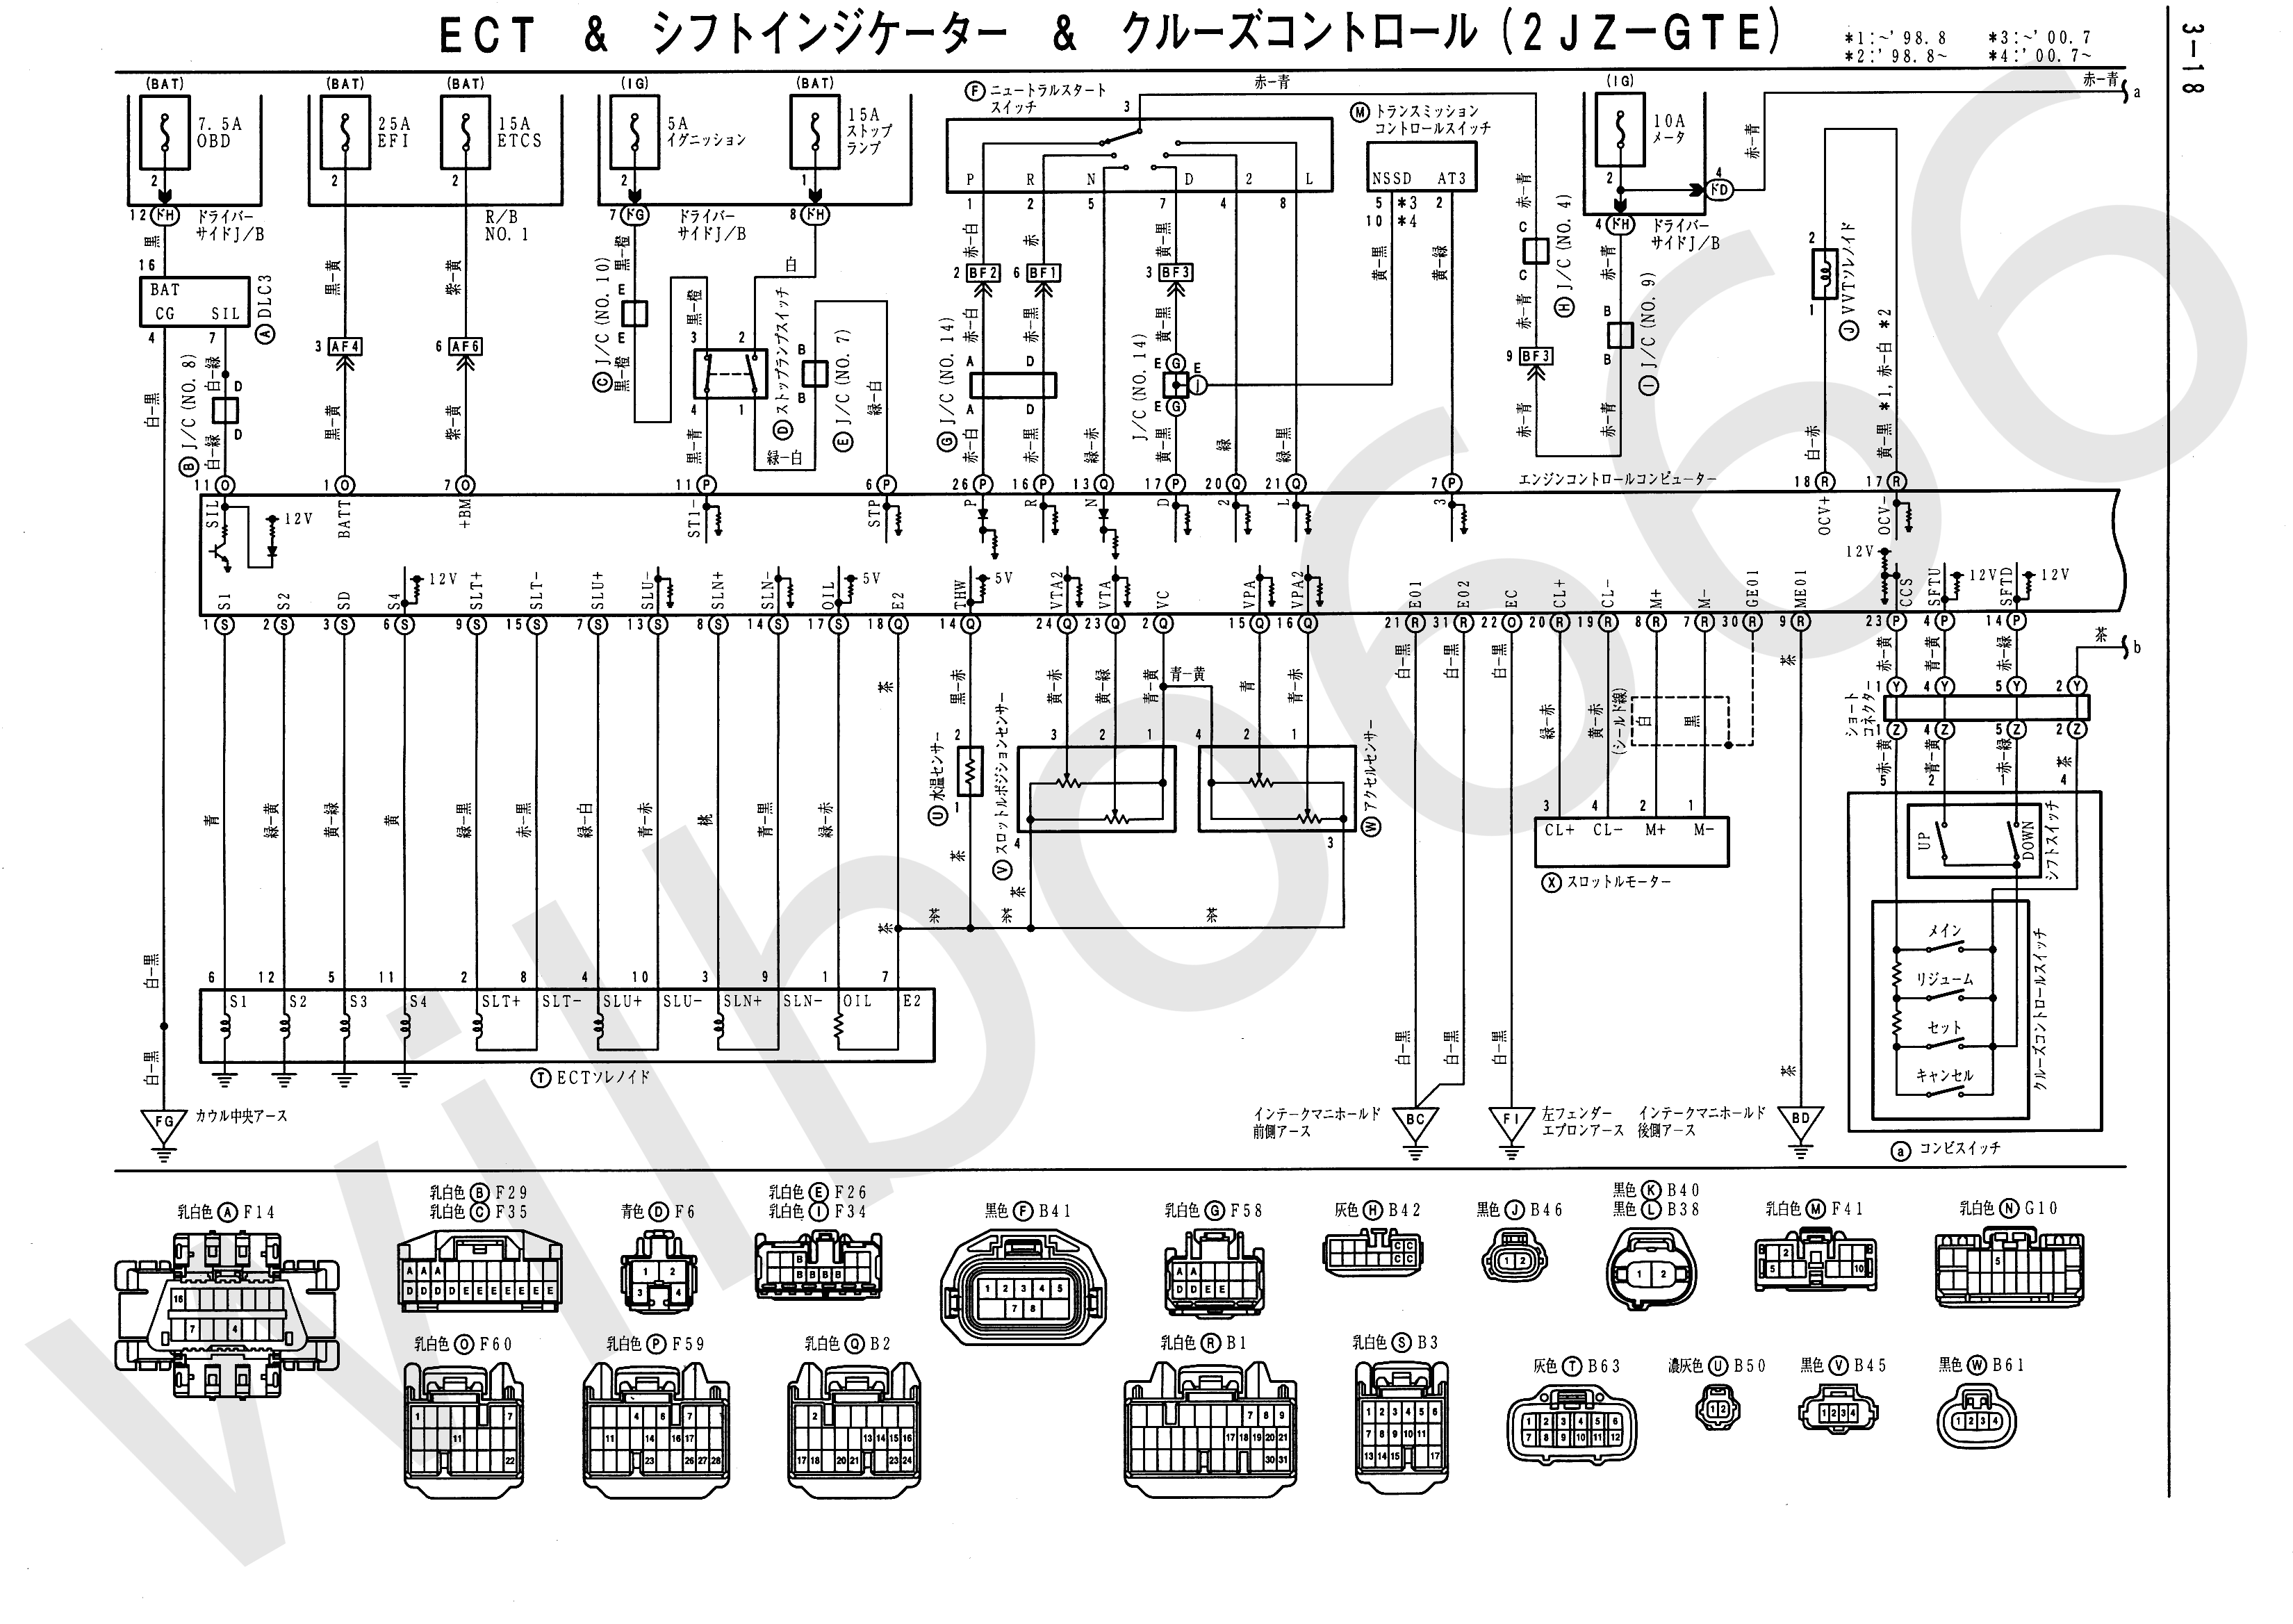 JZS161 Electrical Wiring Diagram 6748505 3 18 1jz wiring diagram light switch wiring diagram \u2022 free wiring  at readyjetset.co